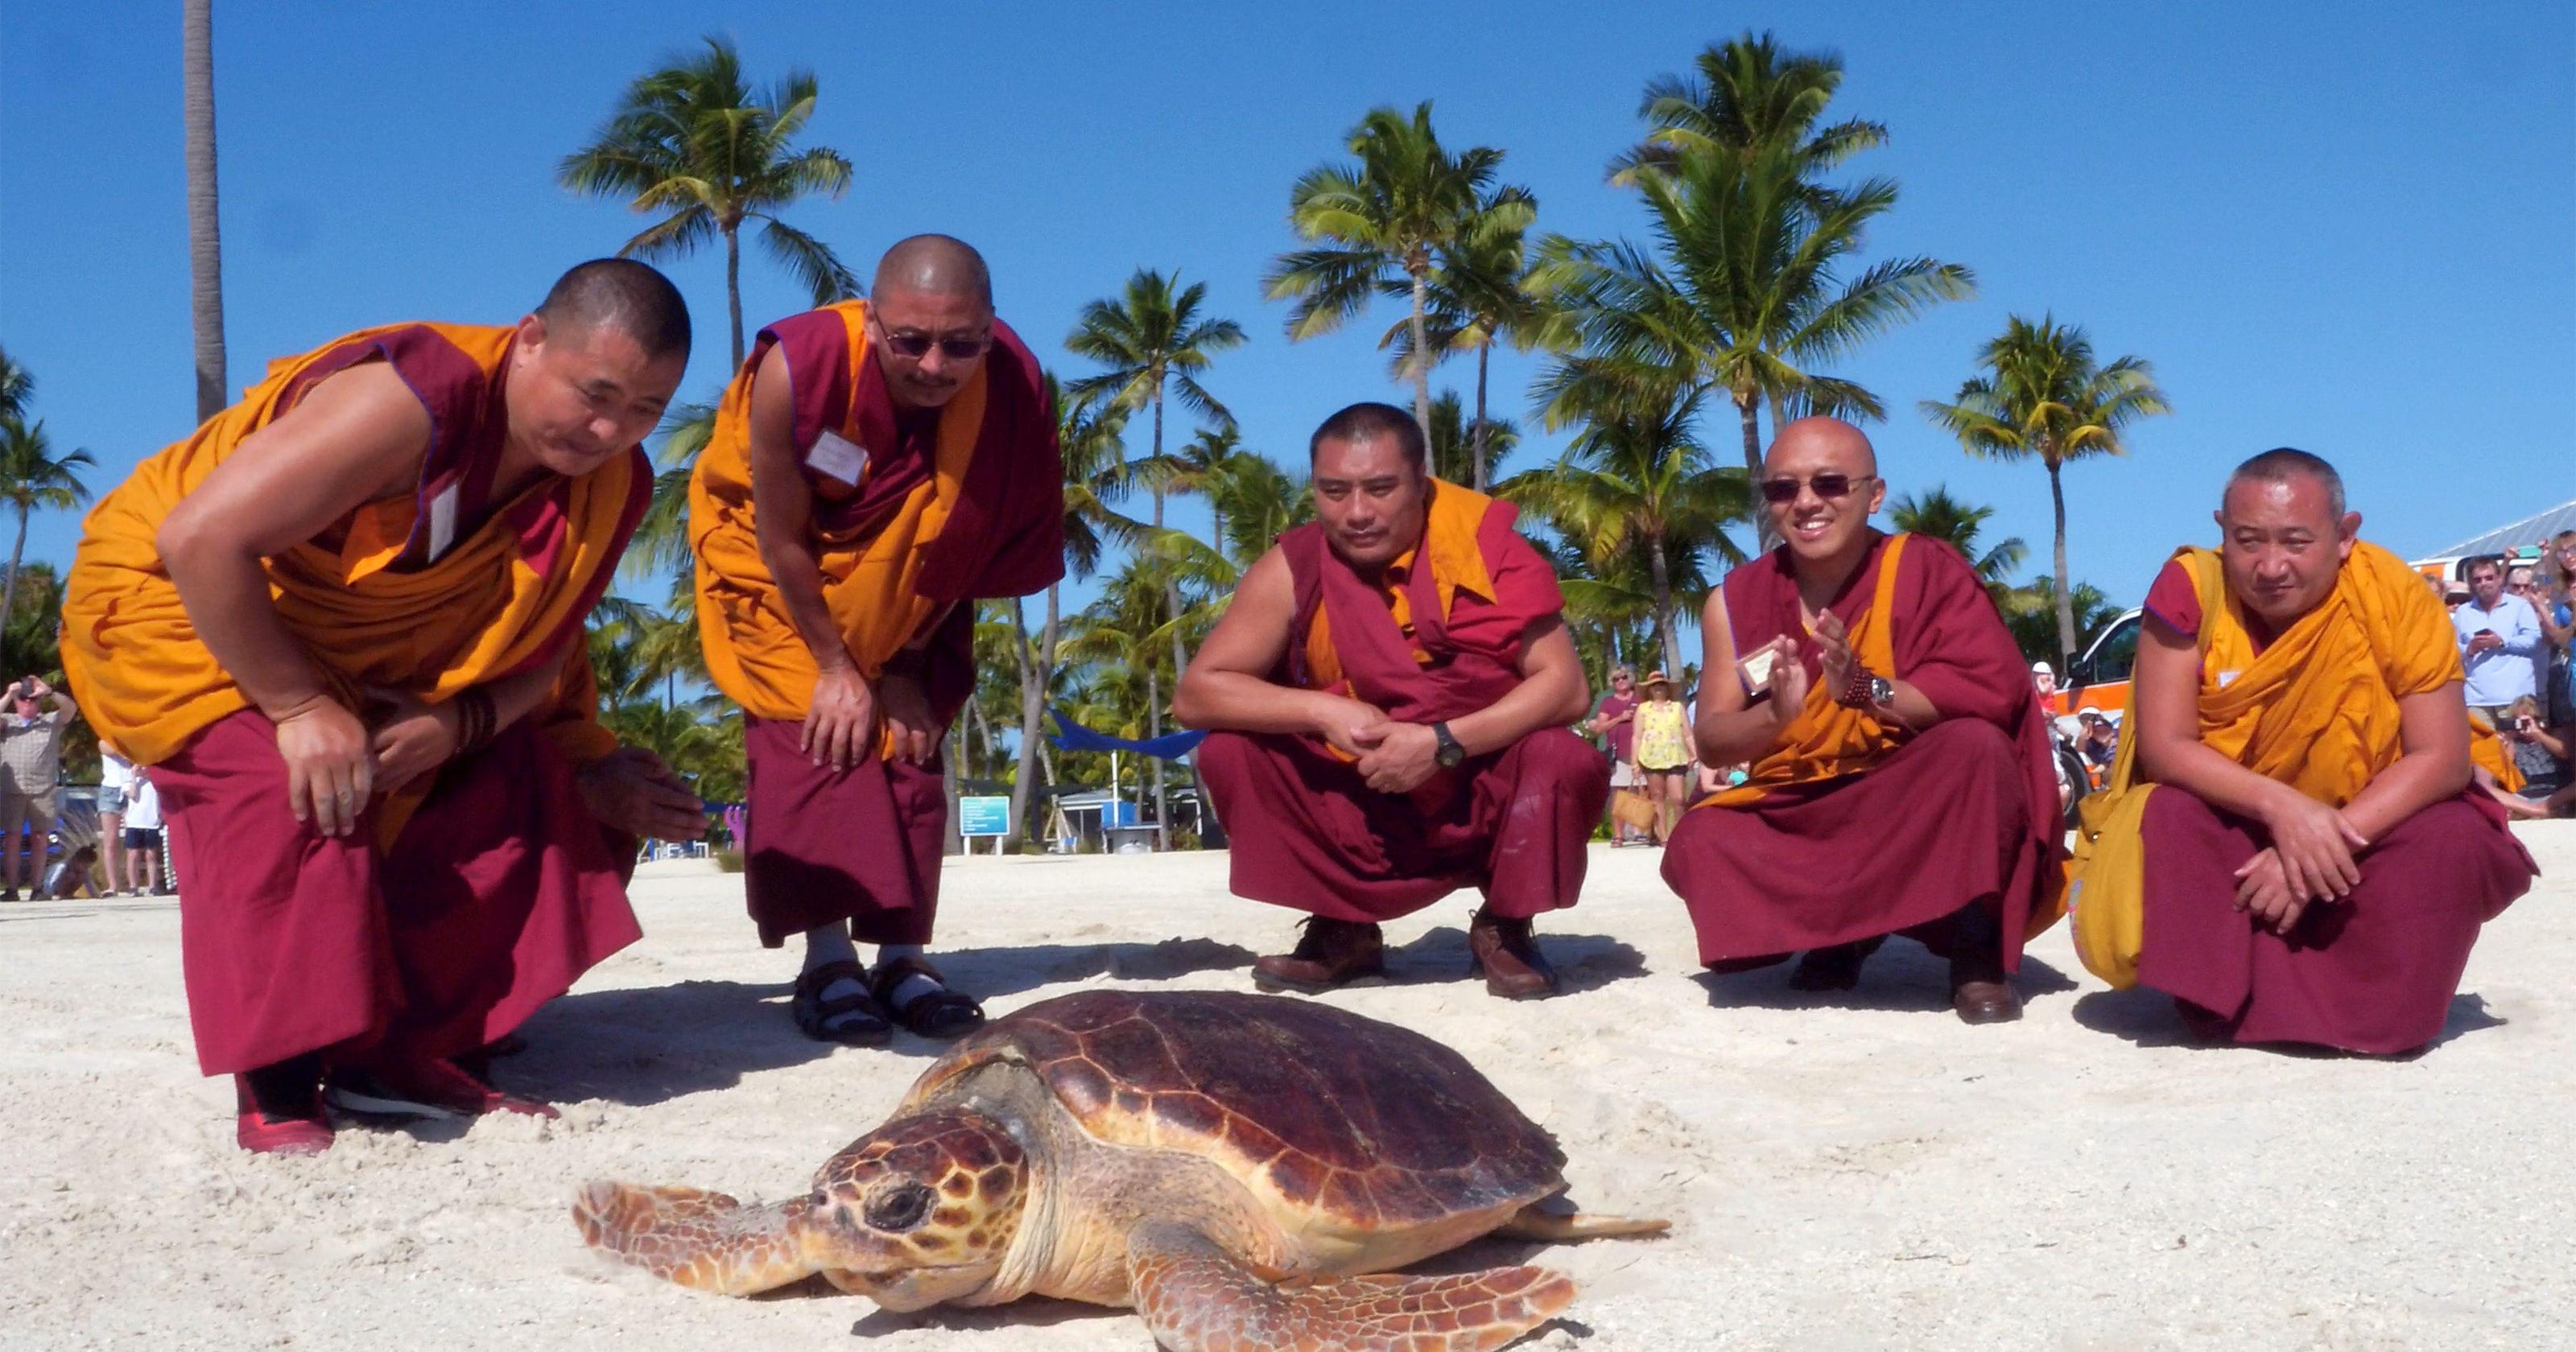 Tibetan monks at turtle release, puppy rescue 911: News from around our 50 states